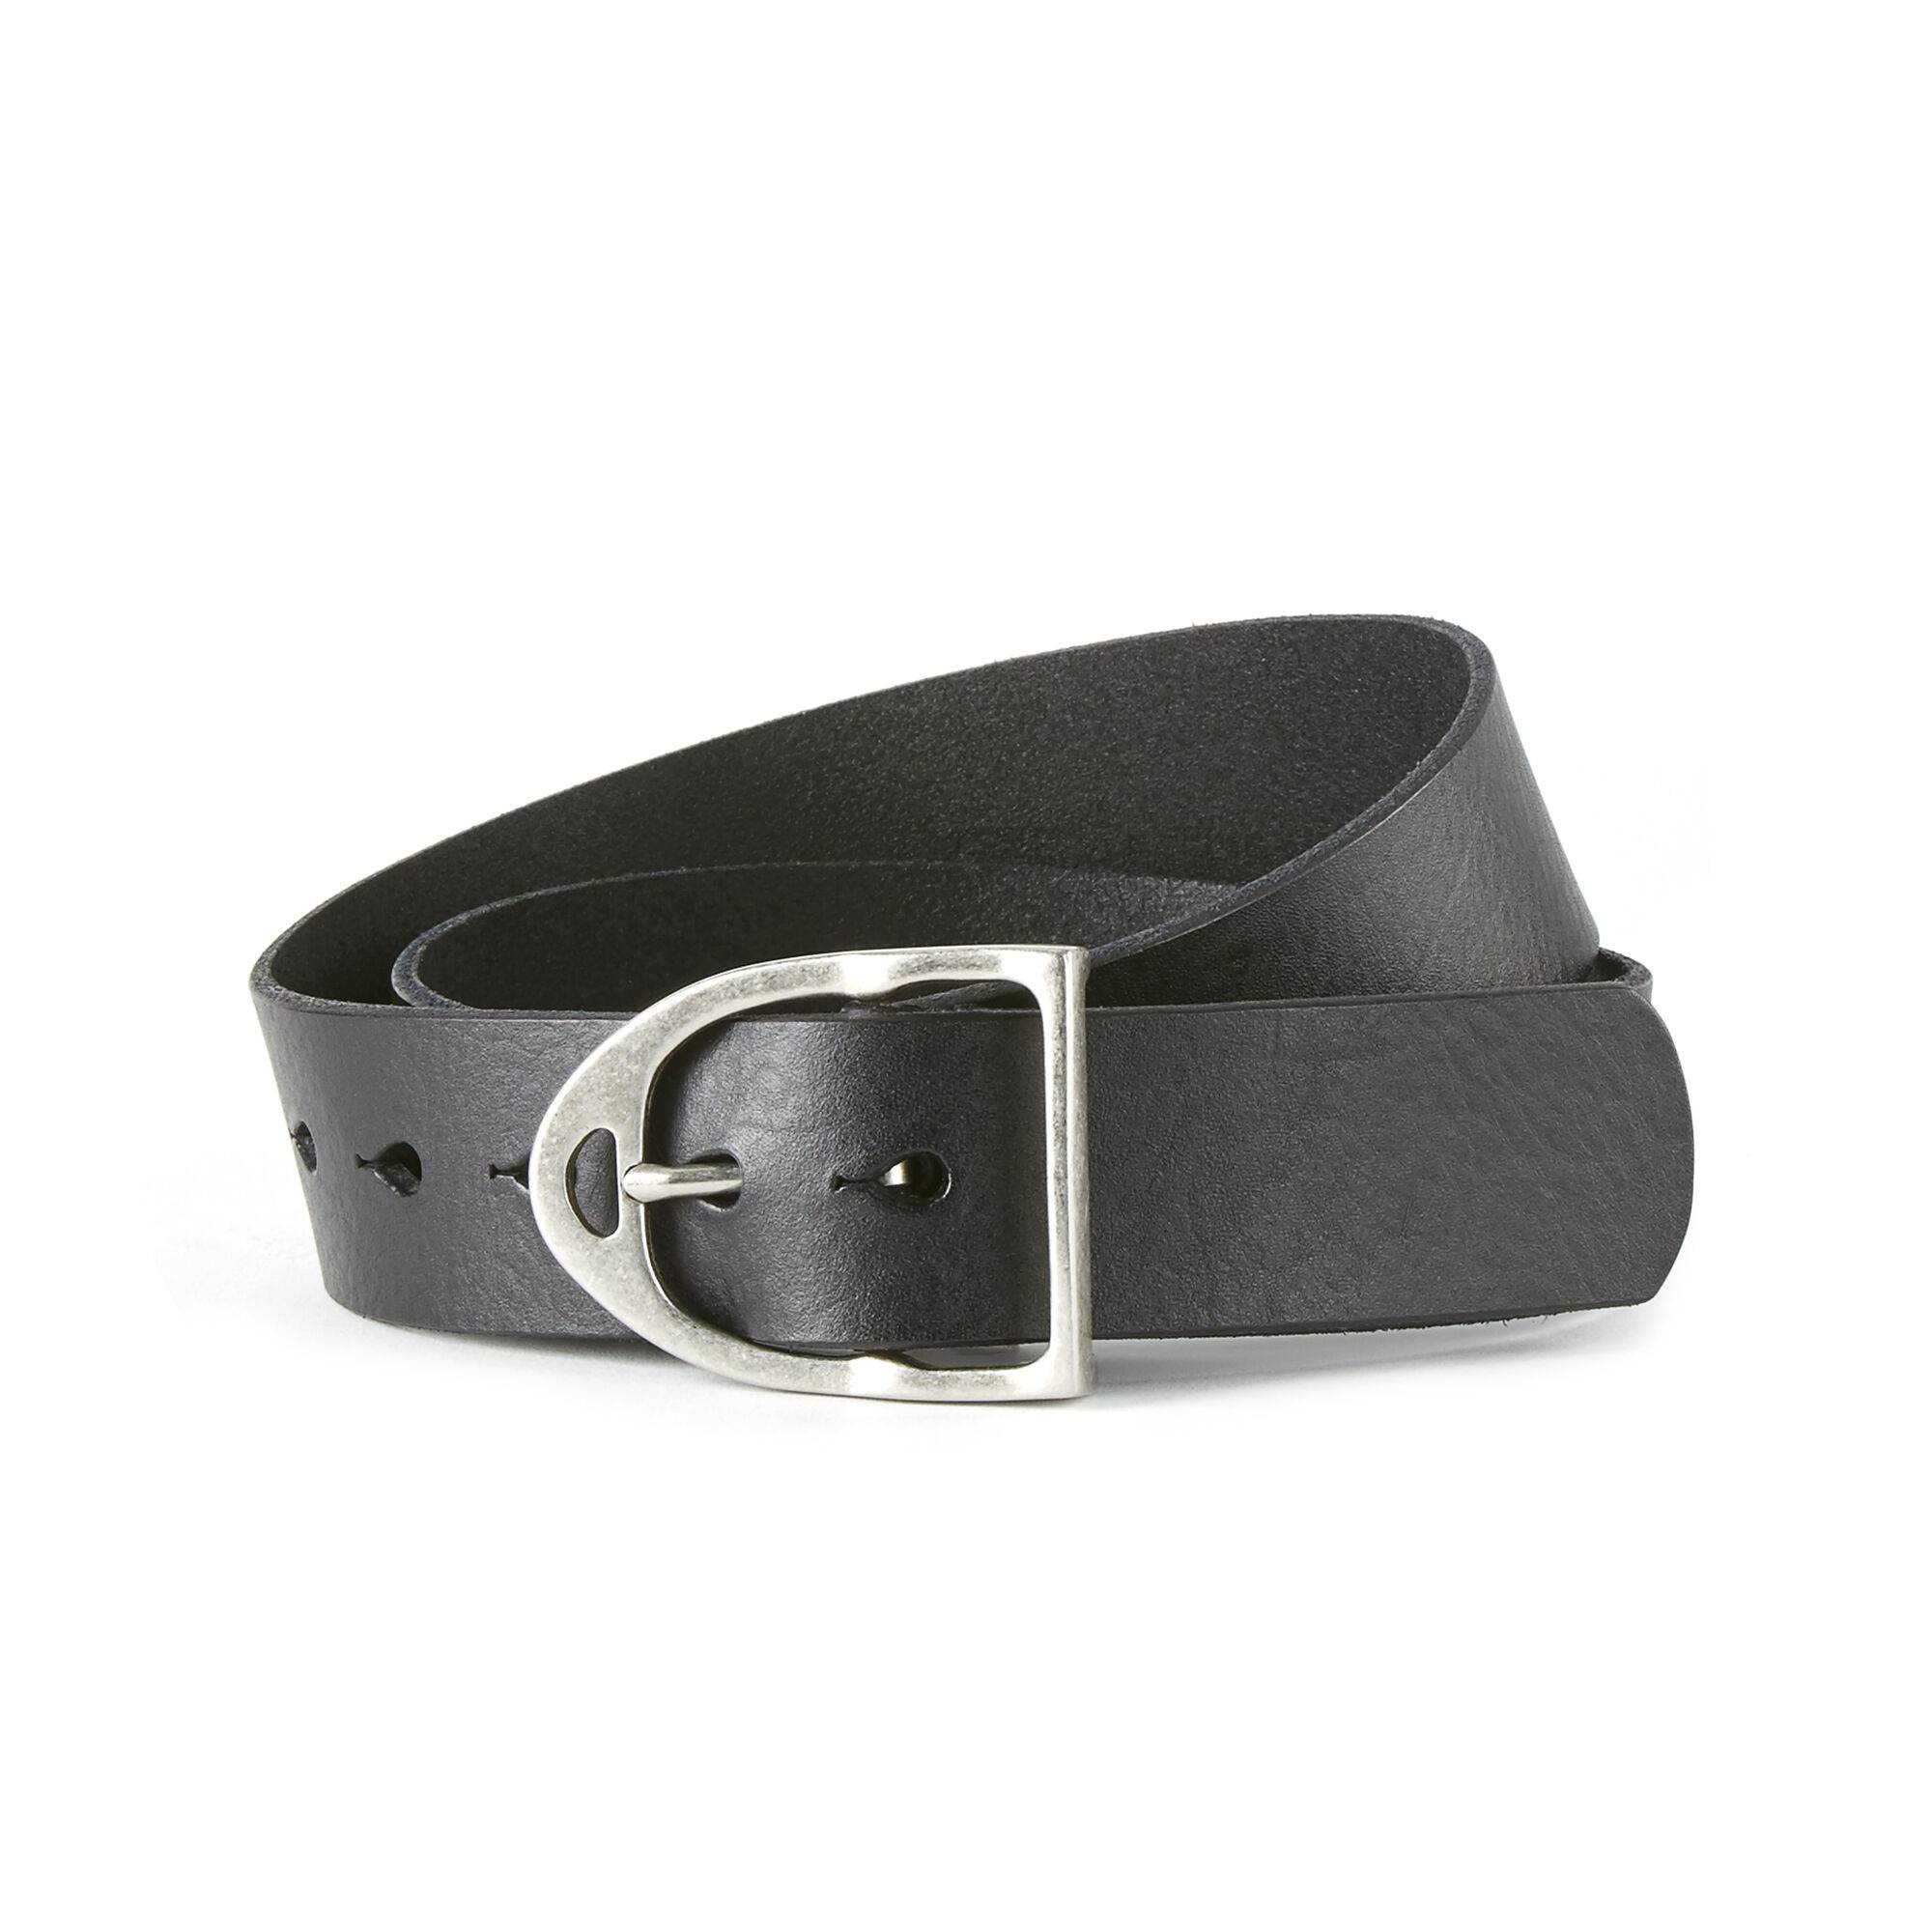 Ariat Stirrup Belt in Black Leather, X-Small by Ariat